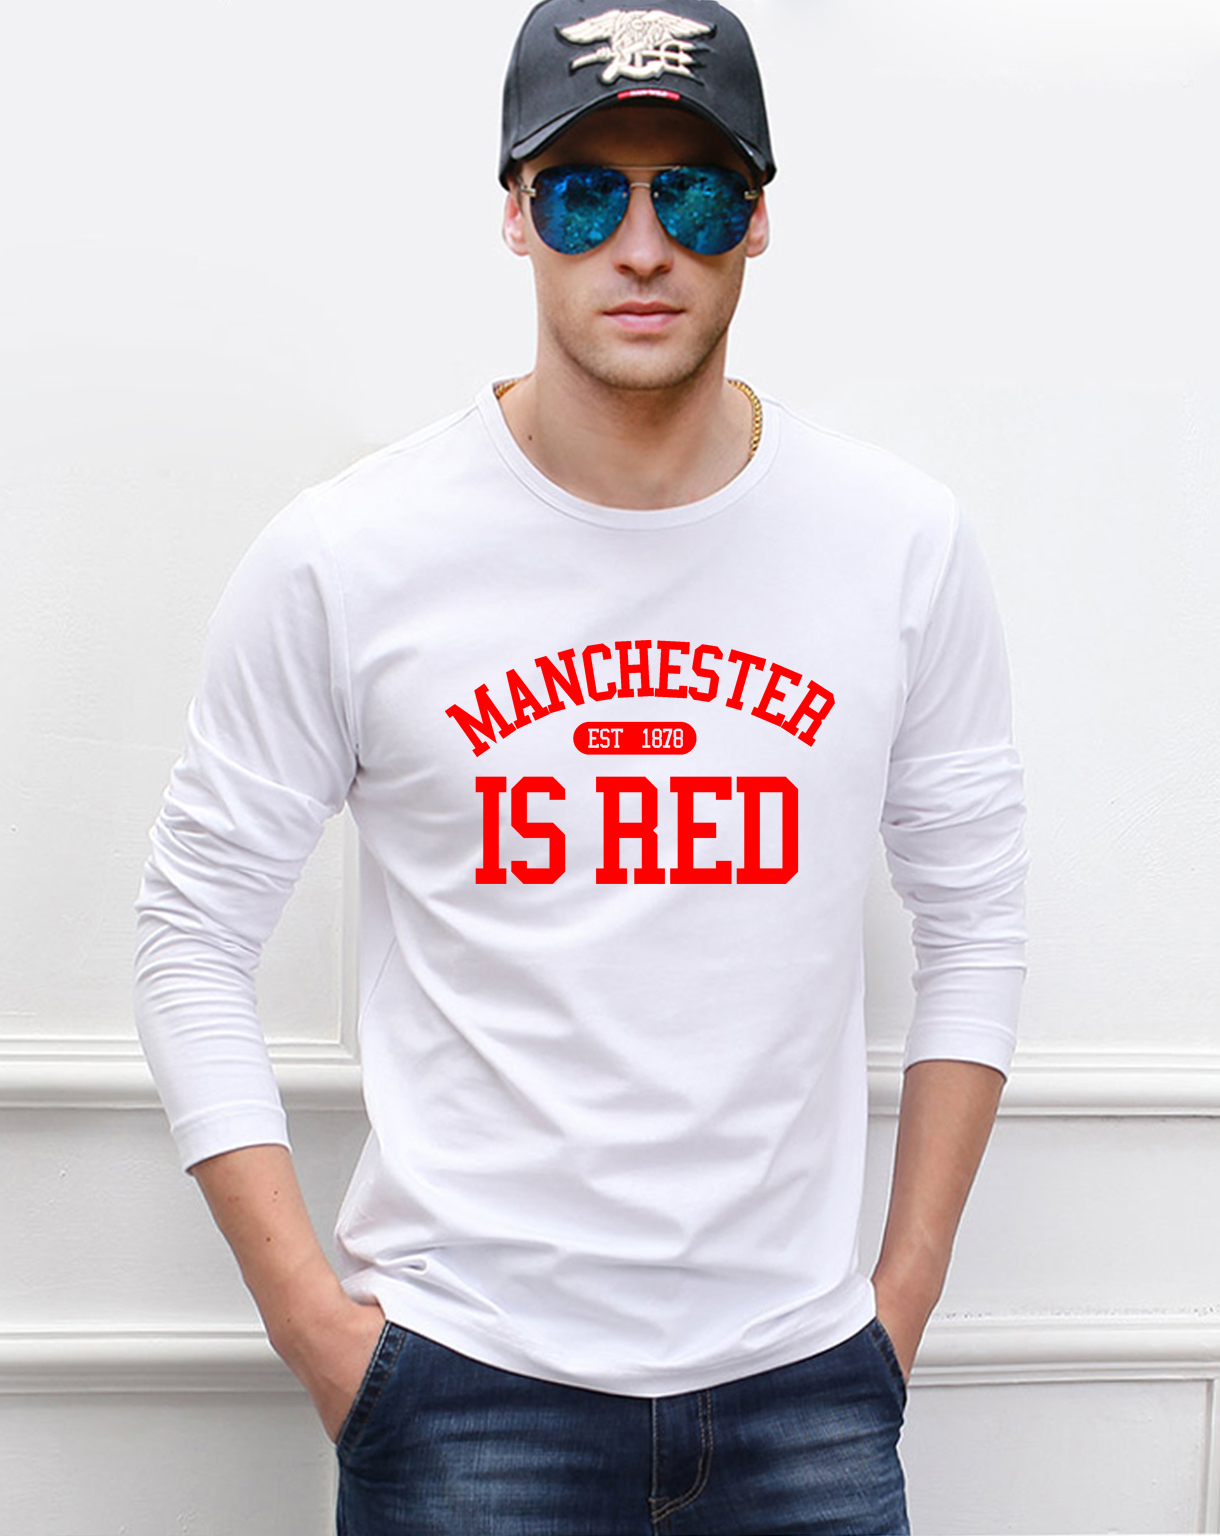 The <font><b>United</b></font> Kingdom <font><b>Manchester</b></font> is red men's long sleeve T-shirts 2016 autumn 100% cotton fitness hip hop Camisetas Masculina